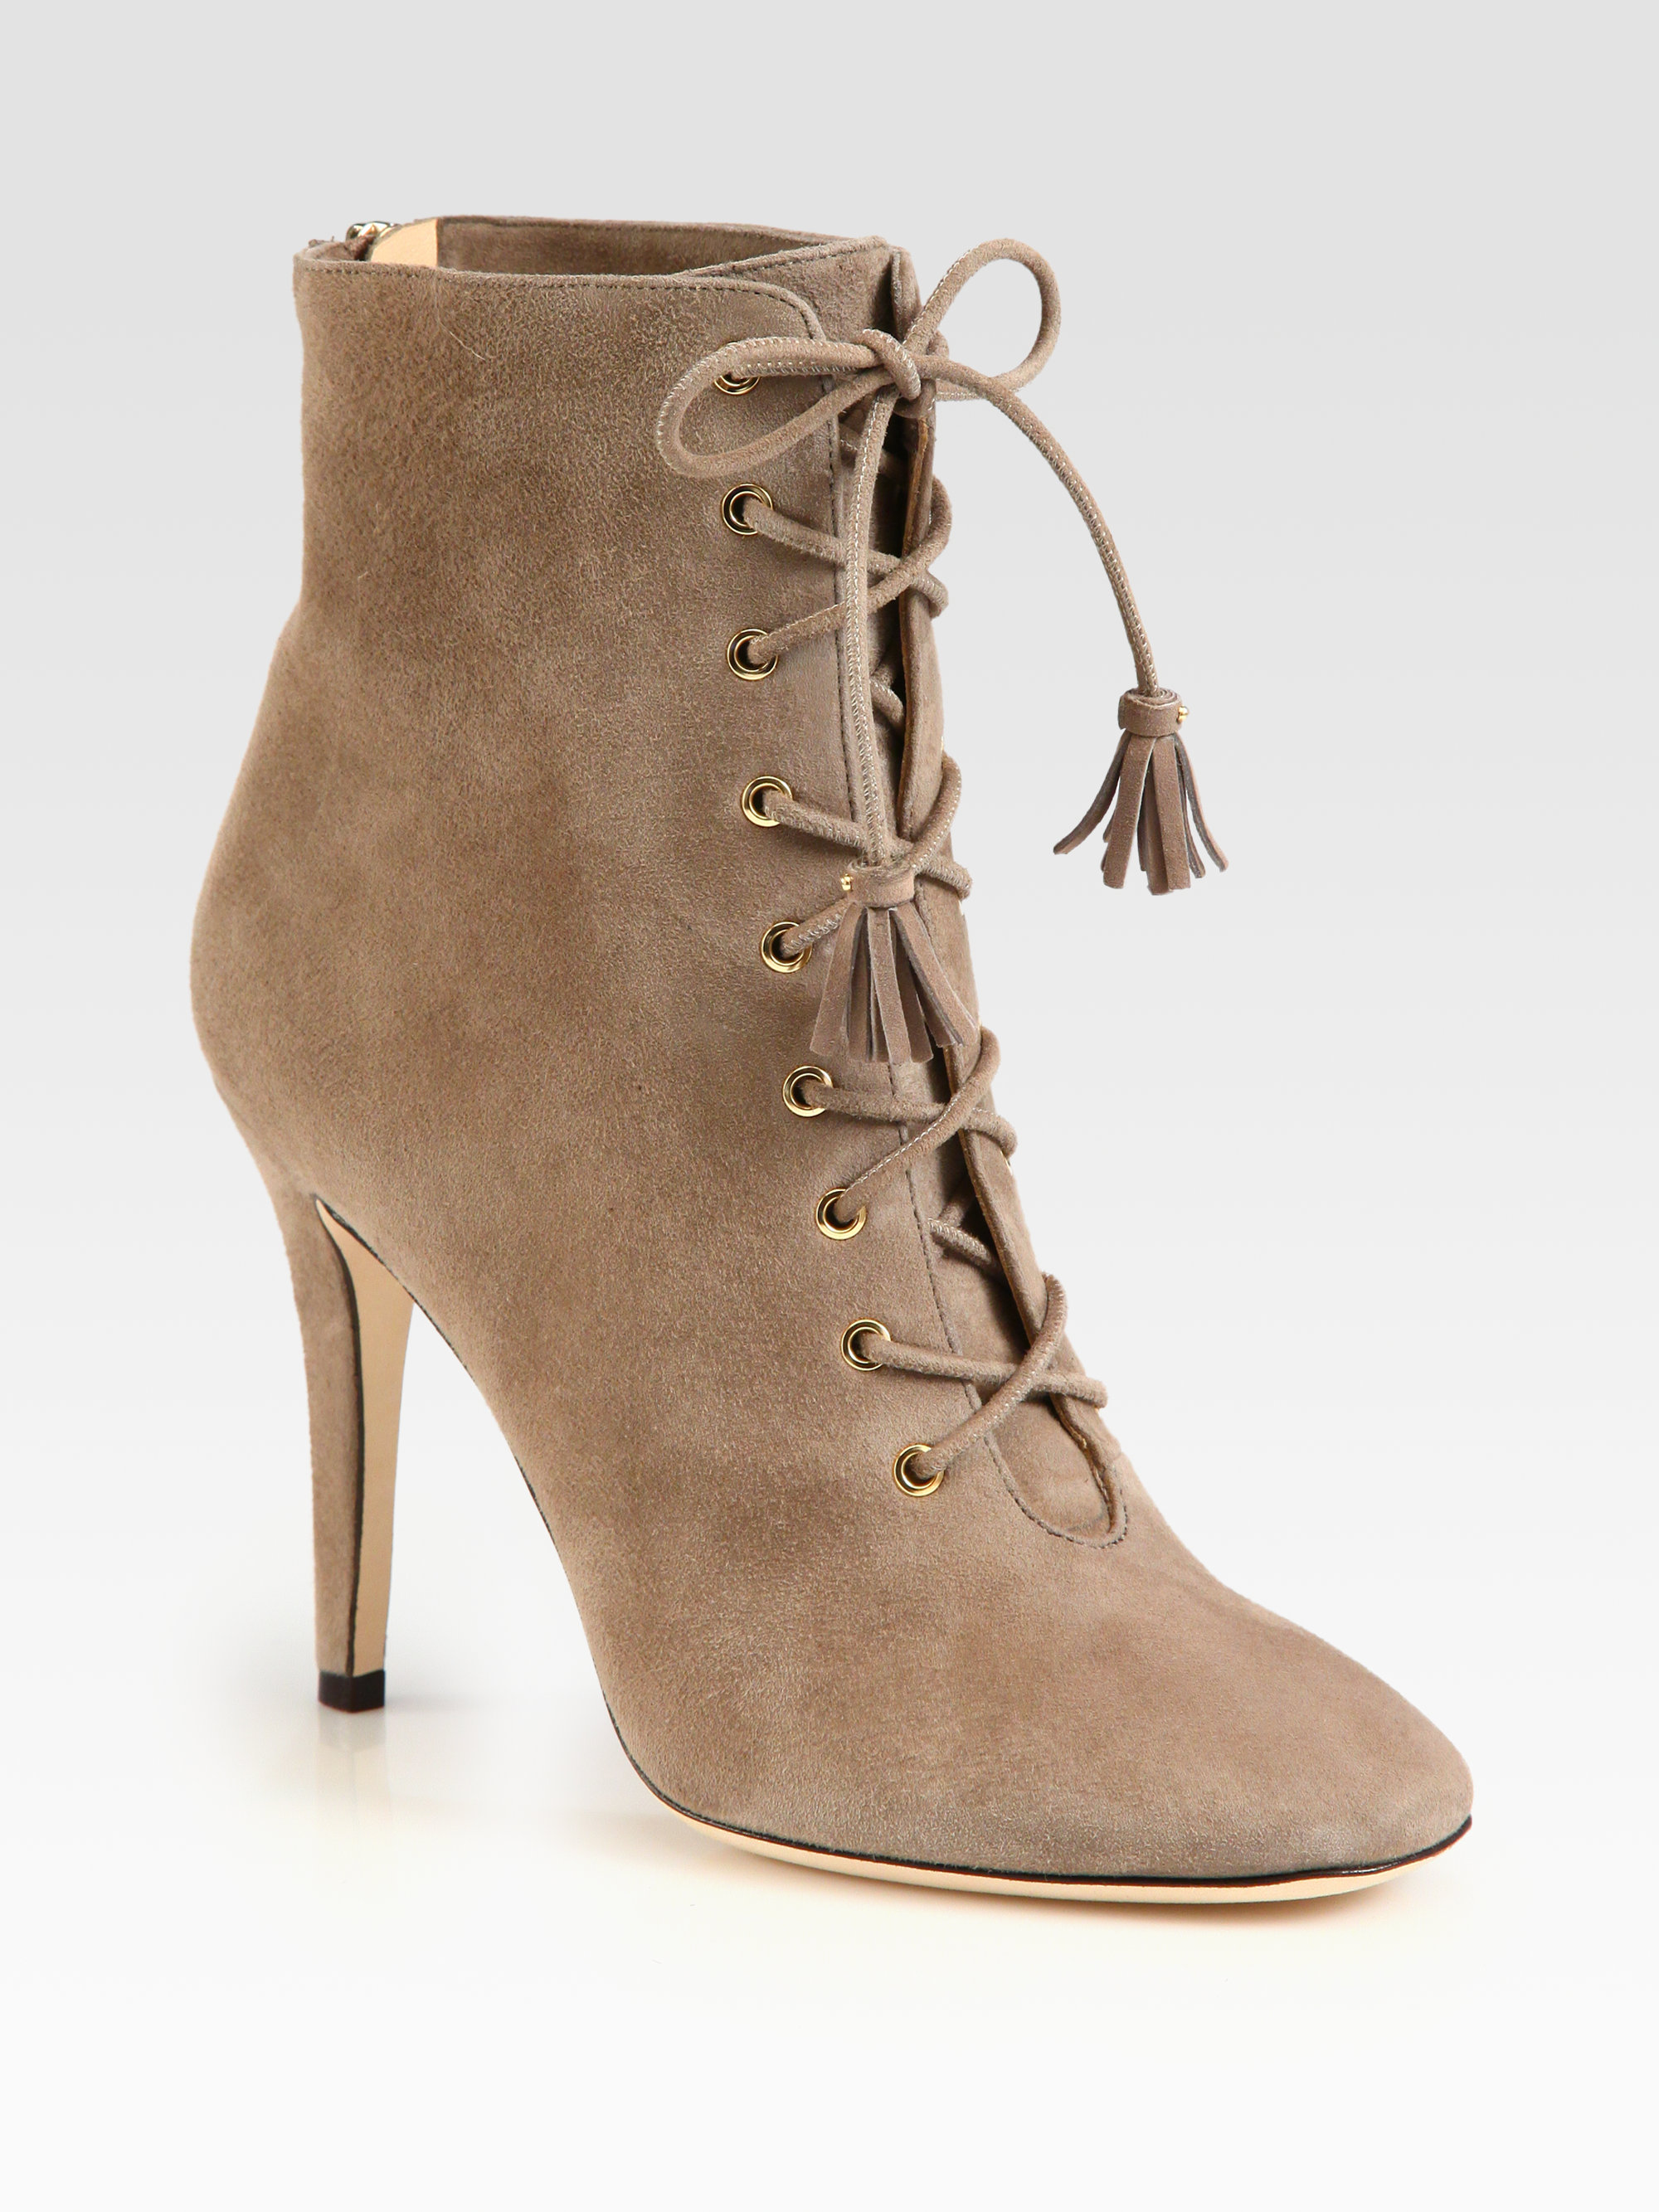 buy cheap extremely Jimmy Choo Leather Lace-Up Boots shipping discount sale outlet best place Knt3V